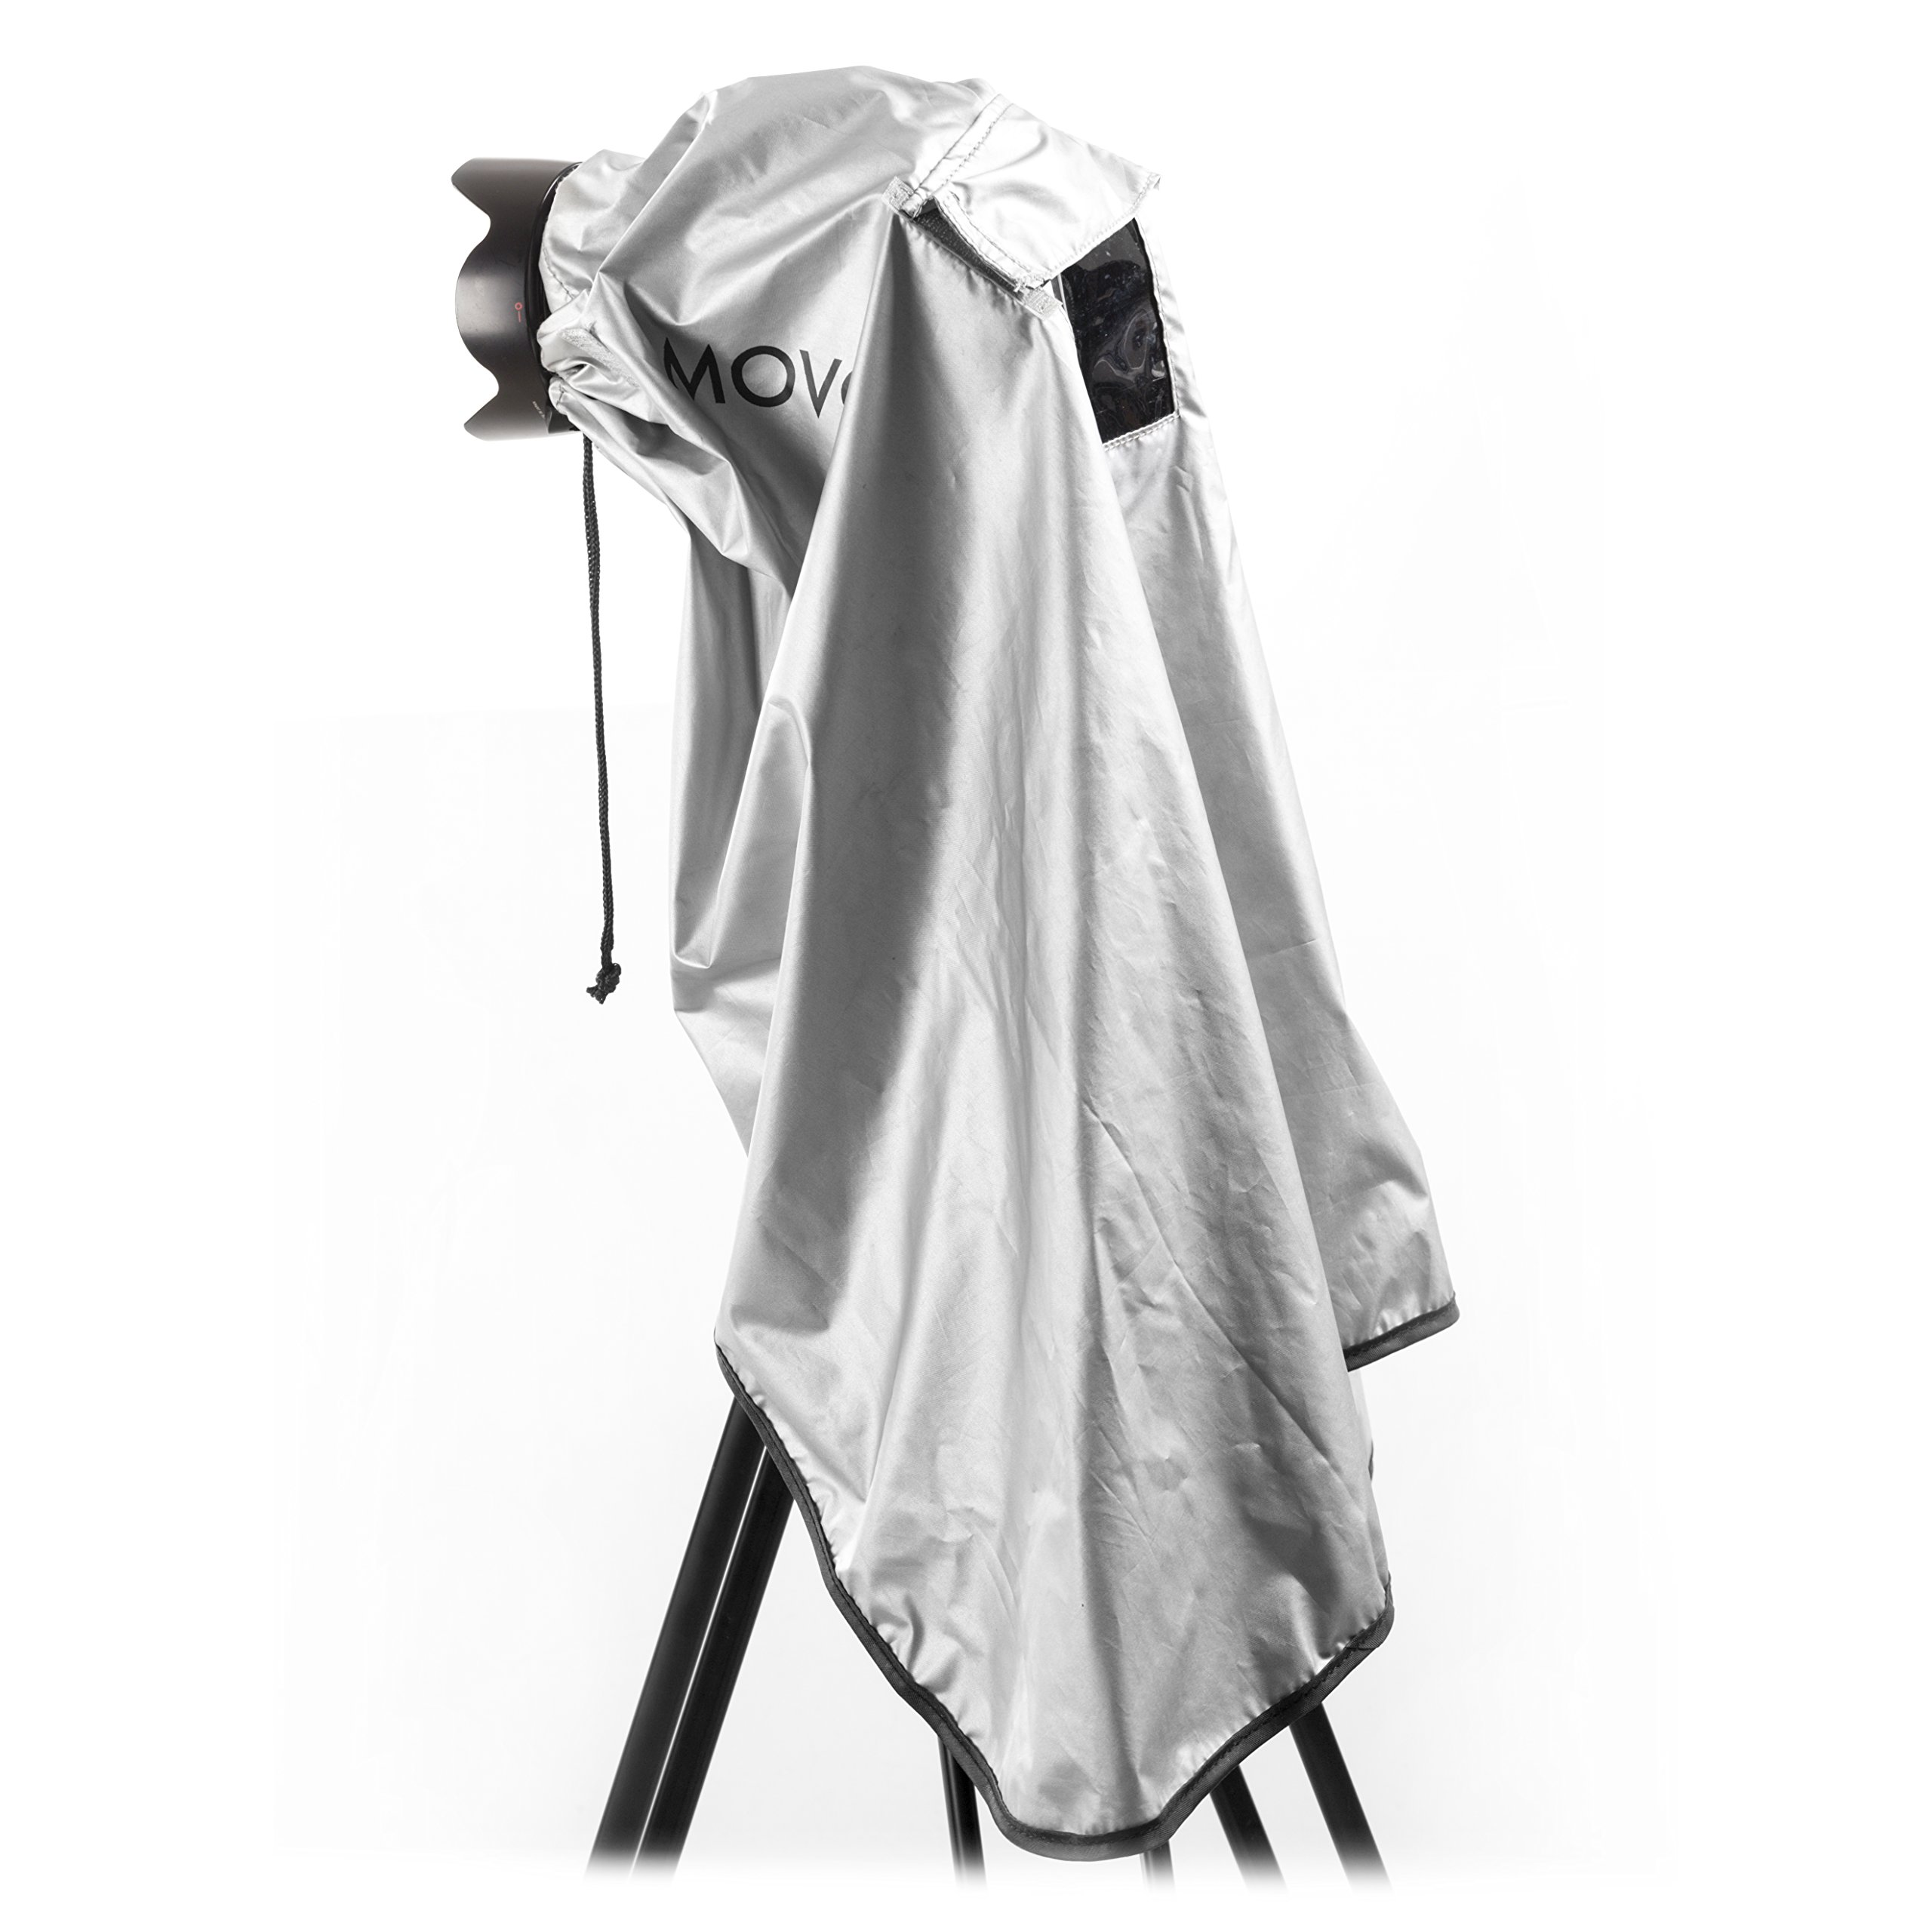 Movo CRC03 Extra-Long Waterproof Rain Coat for DSLR Camera, Lens and Tripod (Metallic Gray) by Movo